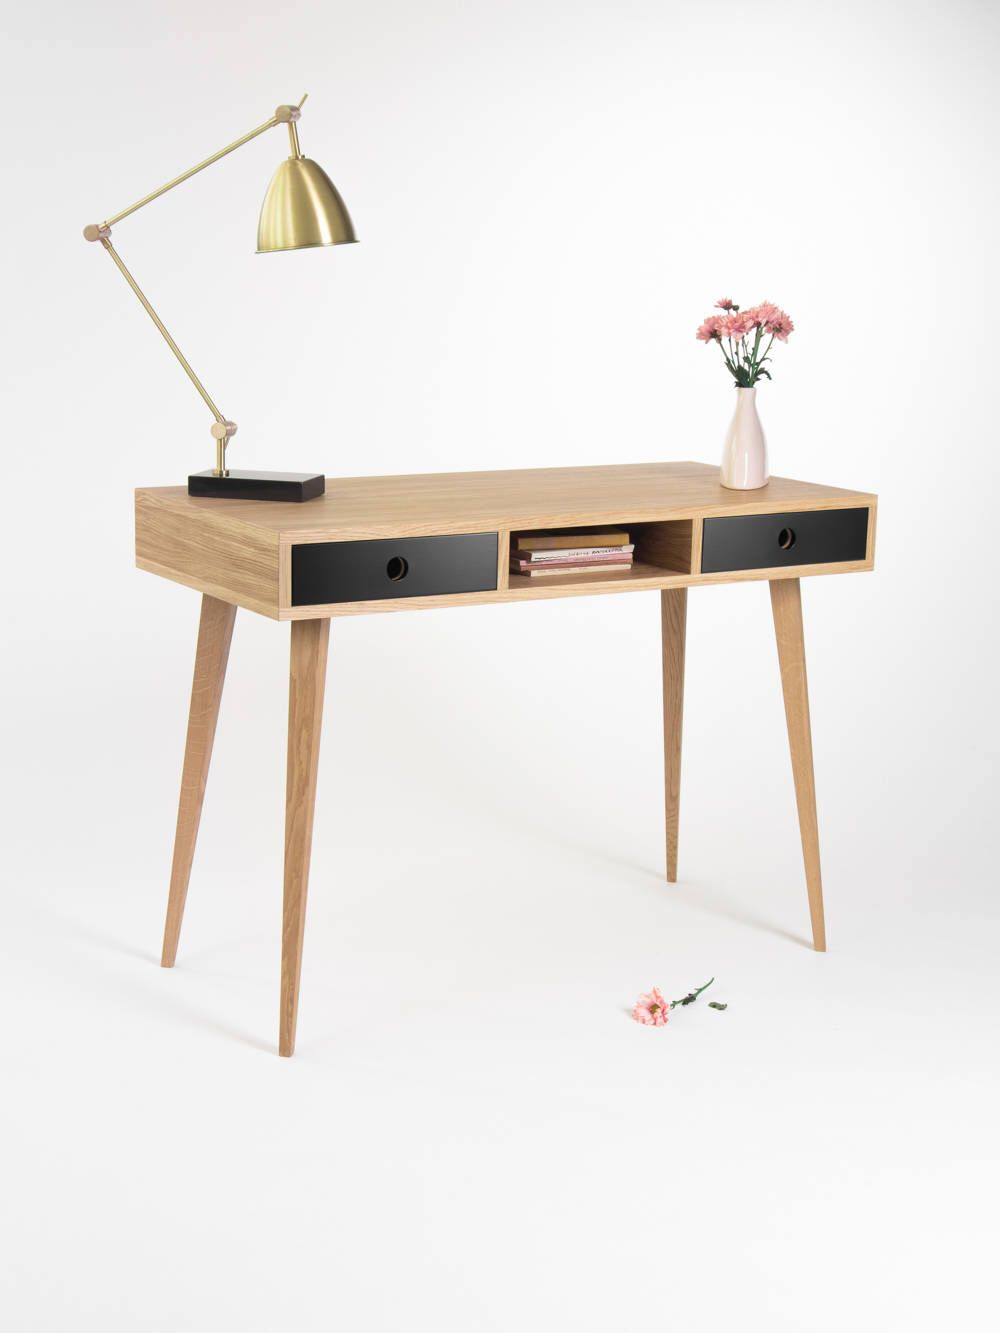 Office Table Small Desk Bureau With Black Drawers Mid Century Modern Oak Wood Customized Size And Finish Small Desk Office Table Oak Wood Desk